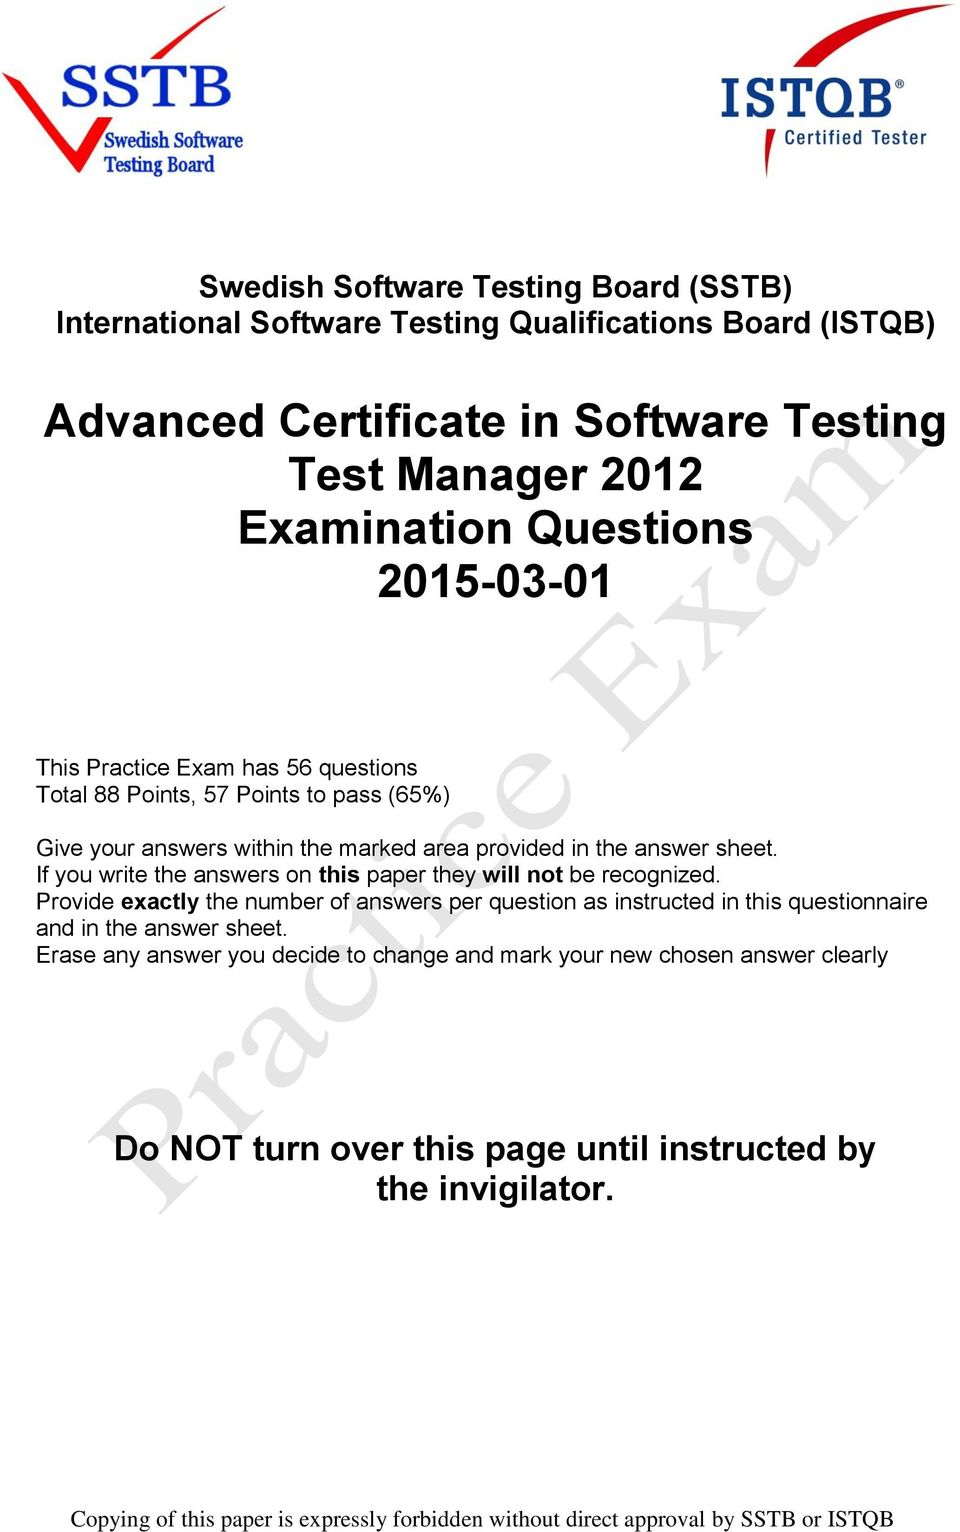 Advanced Certificate in Software Testing Test Manager 2012